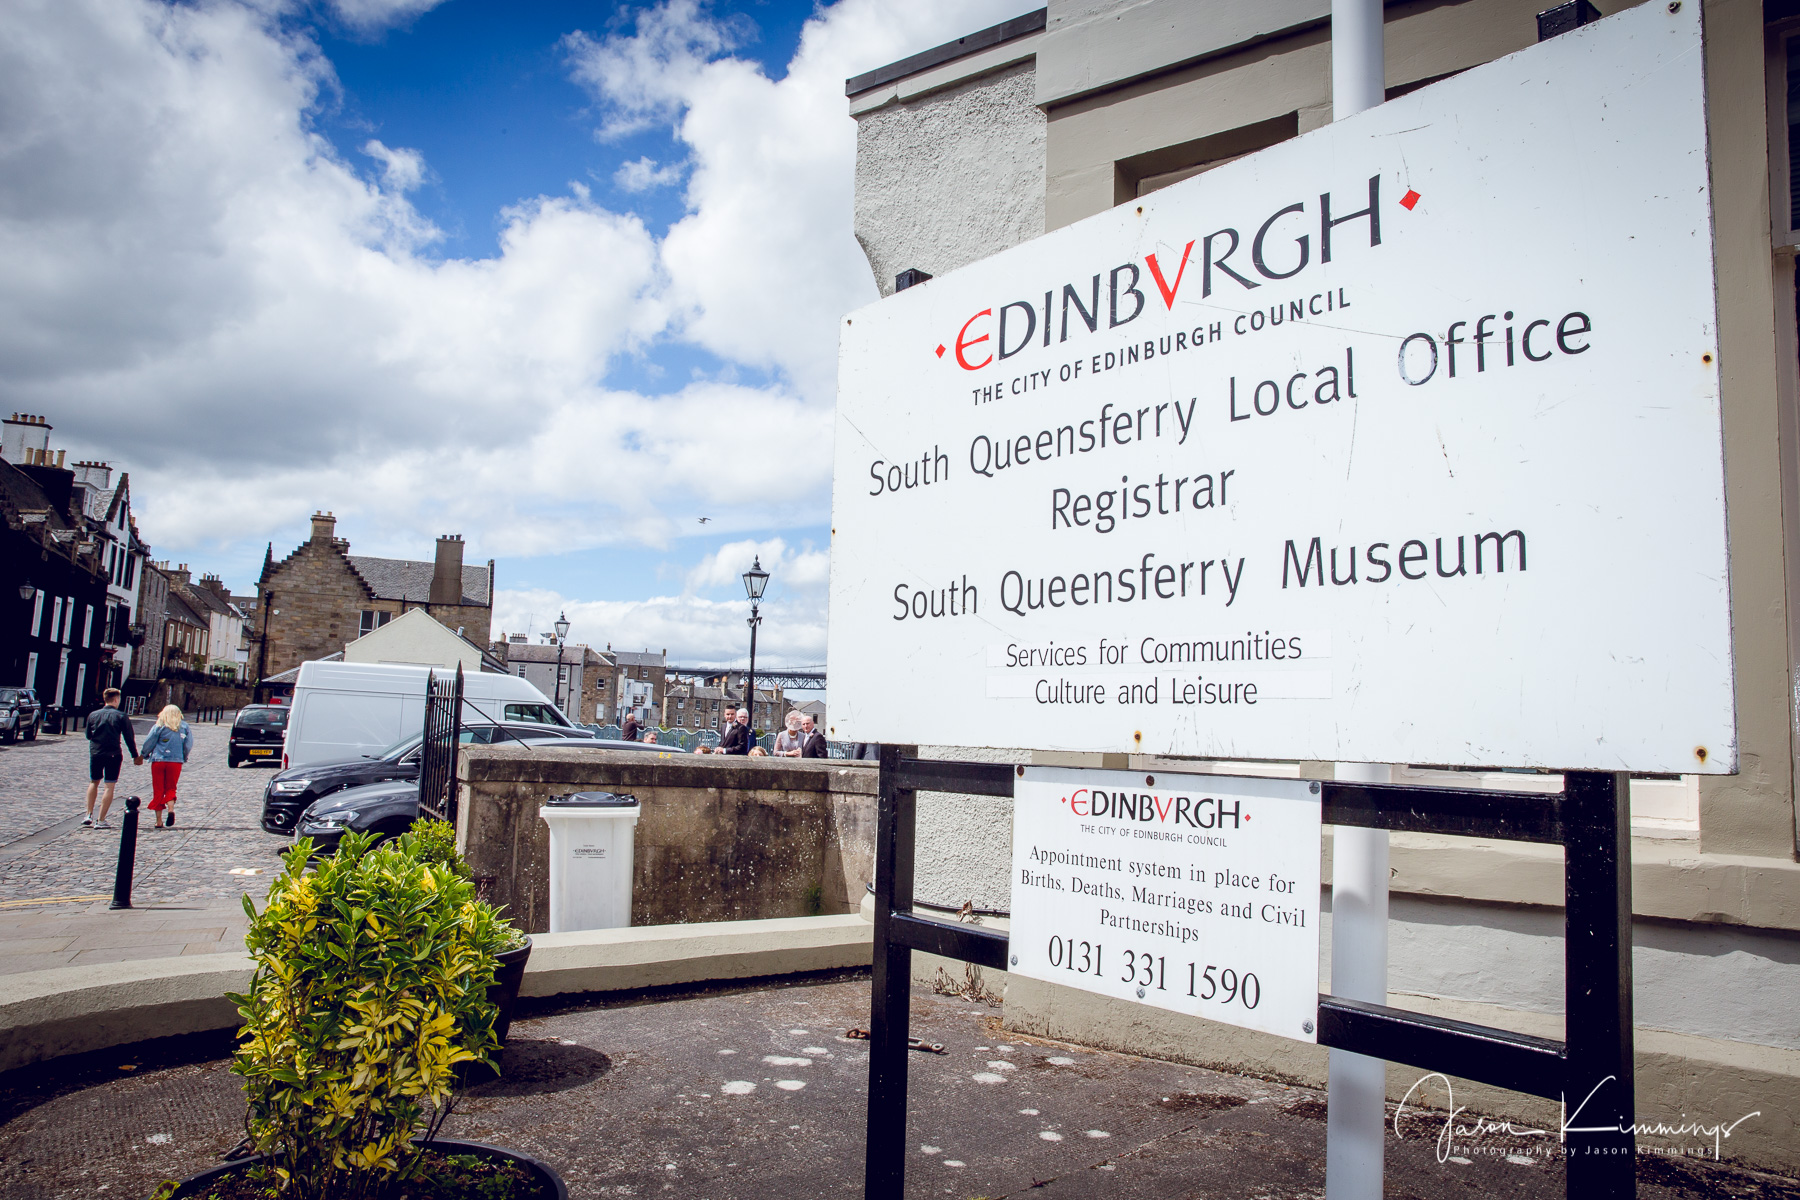 South-queensferry-wedding-photography-edinburgh-8.jpg